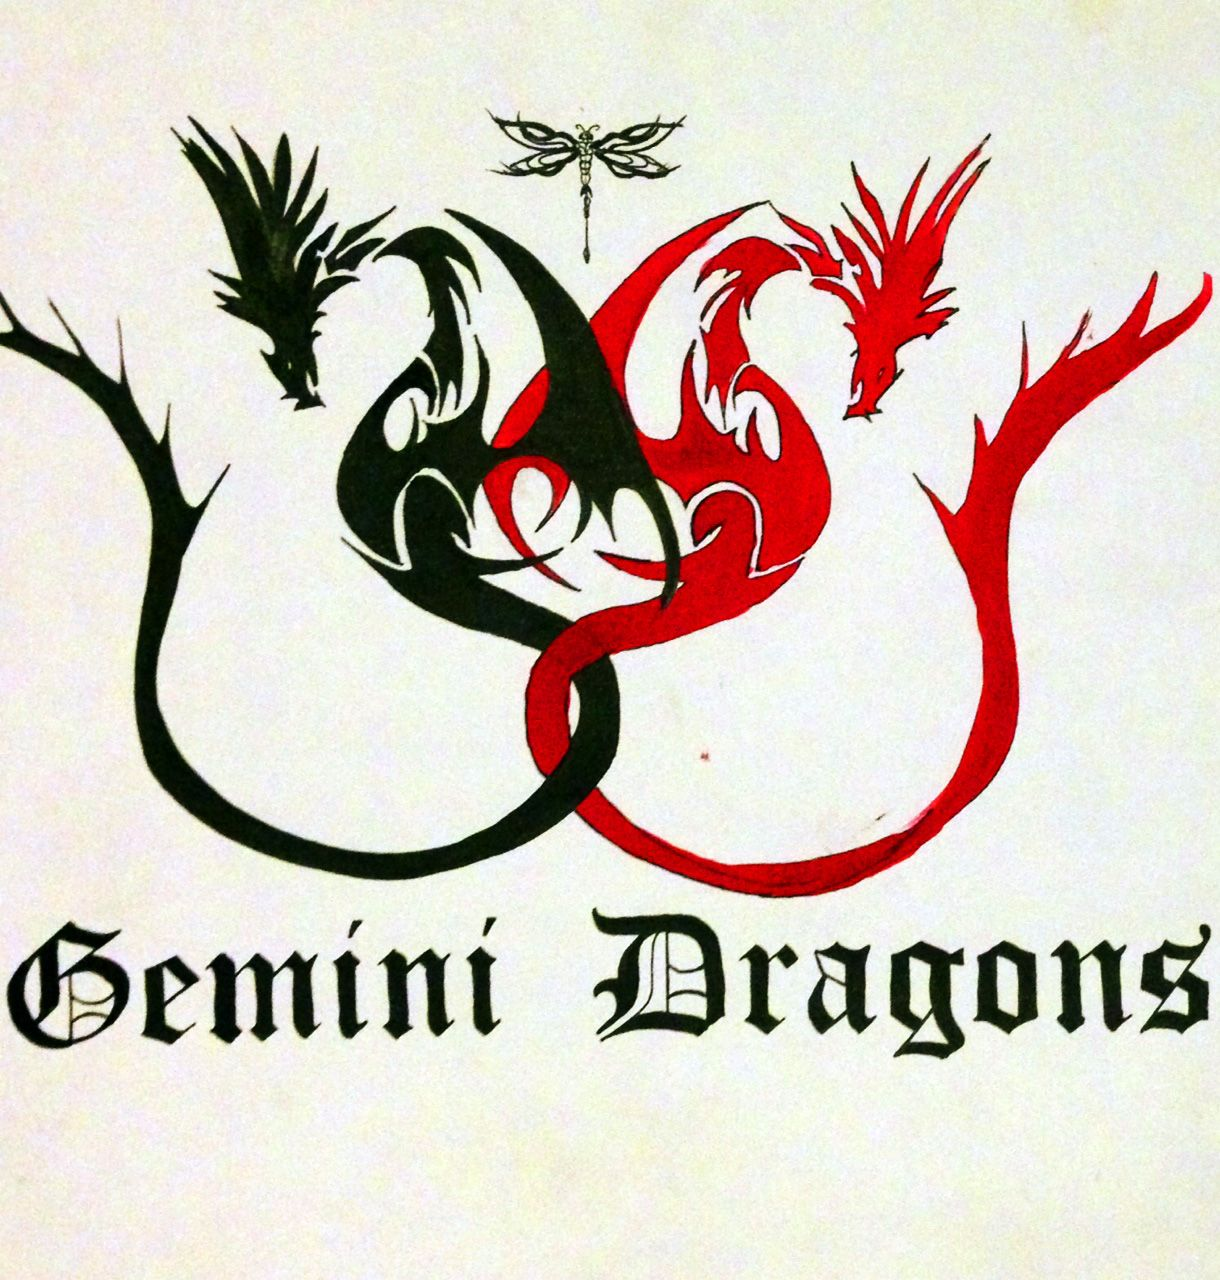 Gemini dragons tattoo design art possibly try for Gemini tribal tattoo